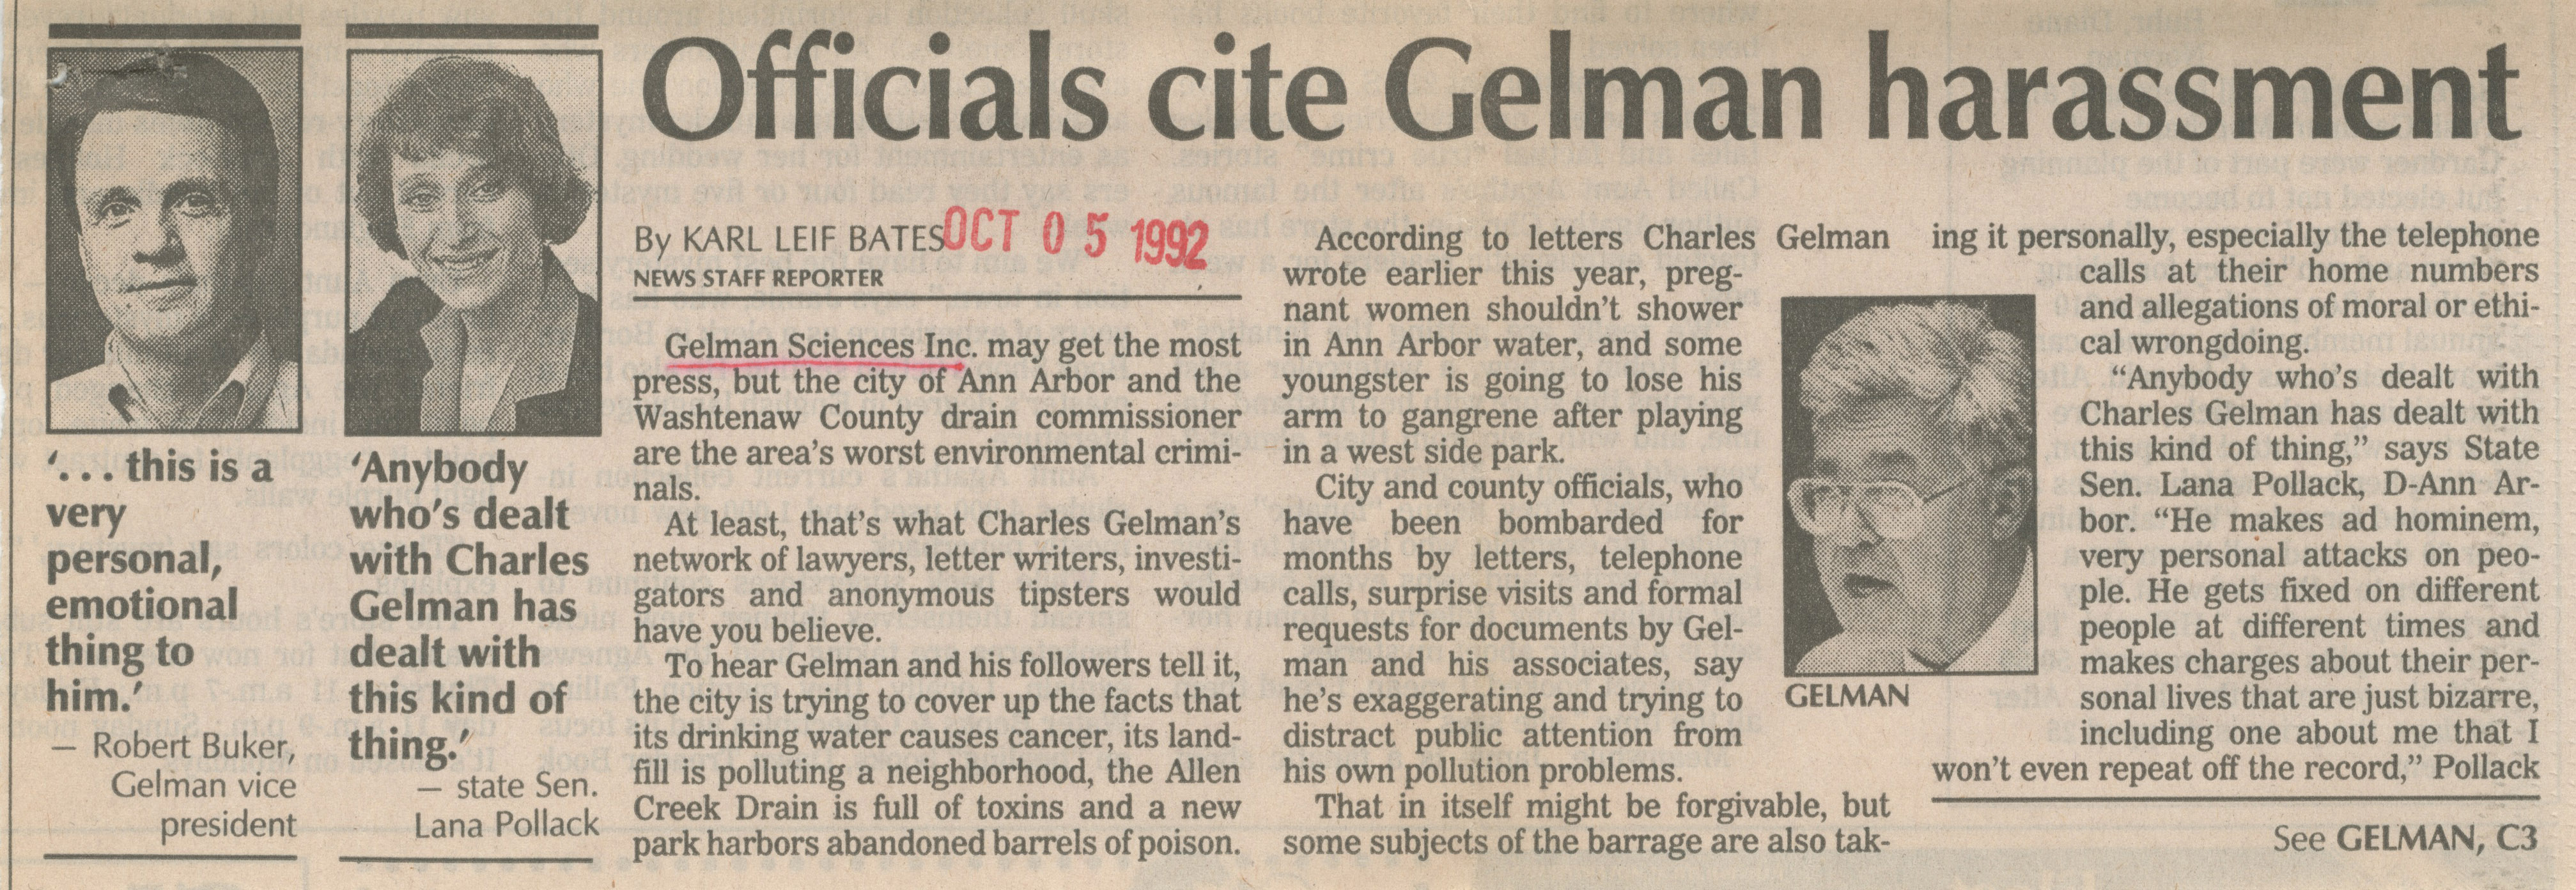 Officials Cite Gelman Harassment image